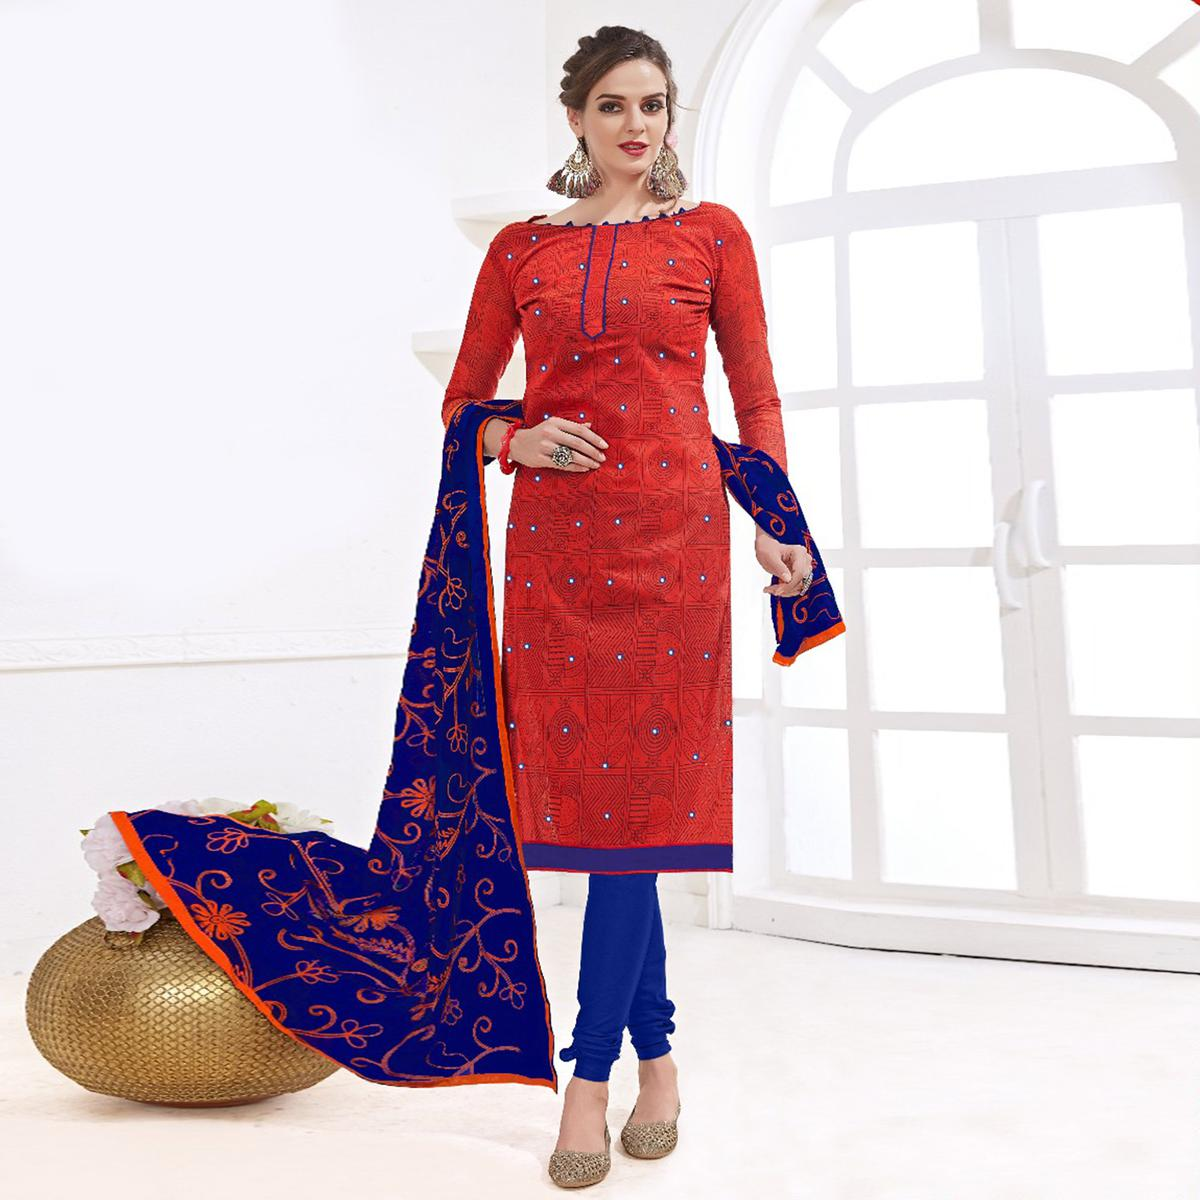 f4a2552da8 Buy Gorgeous Red-Blue Colored Mirror Worked Chanderi Silk Dress Material  for womens online India, Best Prices, Reviews - Peachmode